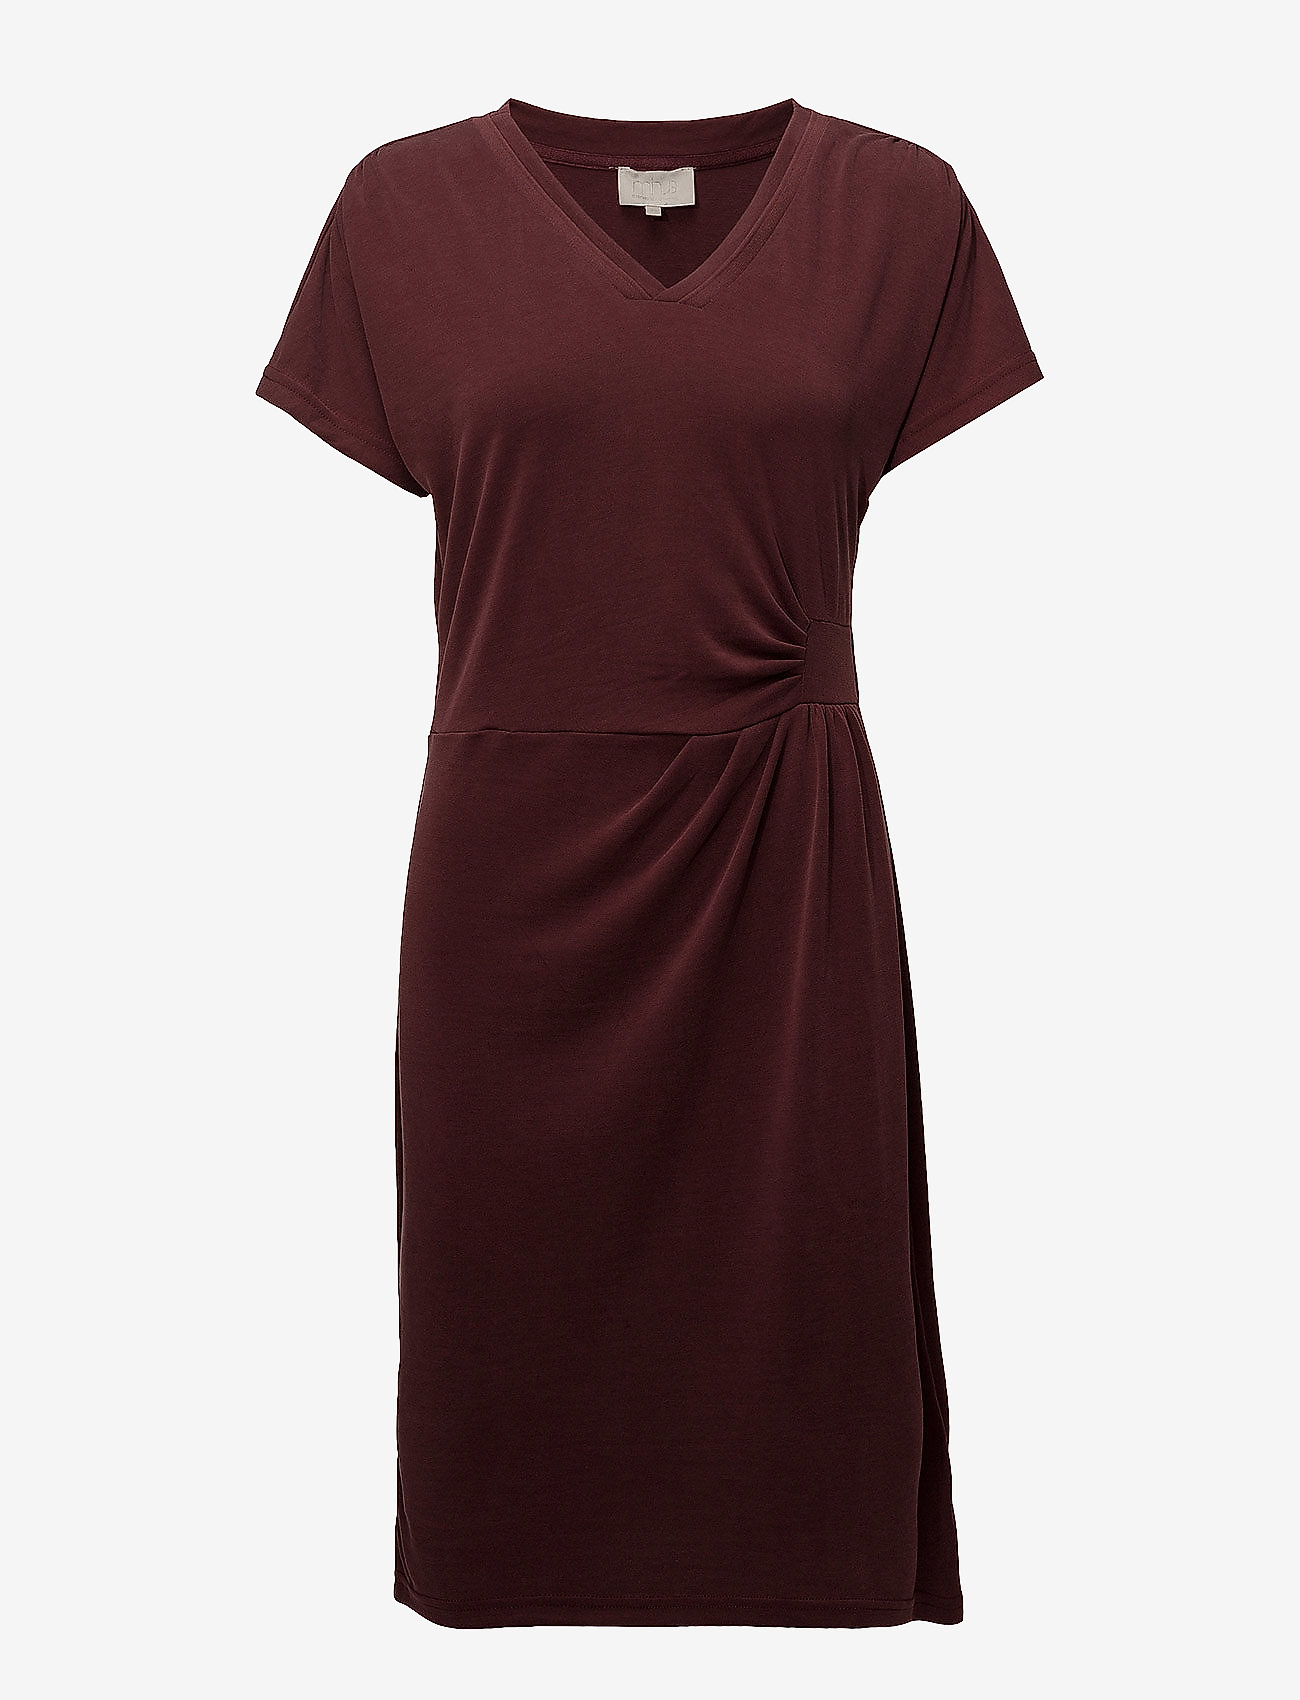 Minus Dyveke dress - Dresses SASSAFRAS BORDEAUX